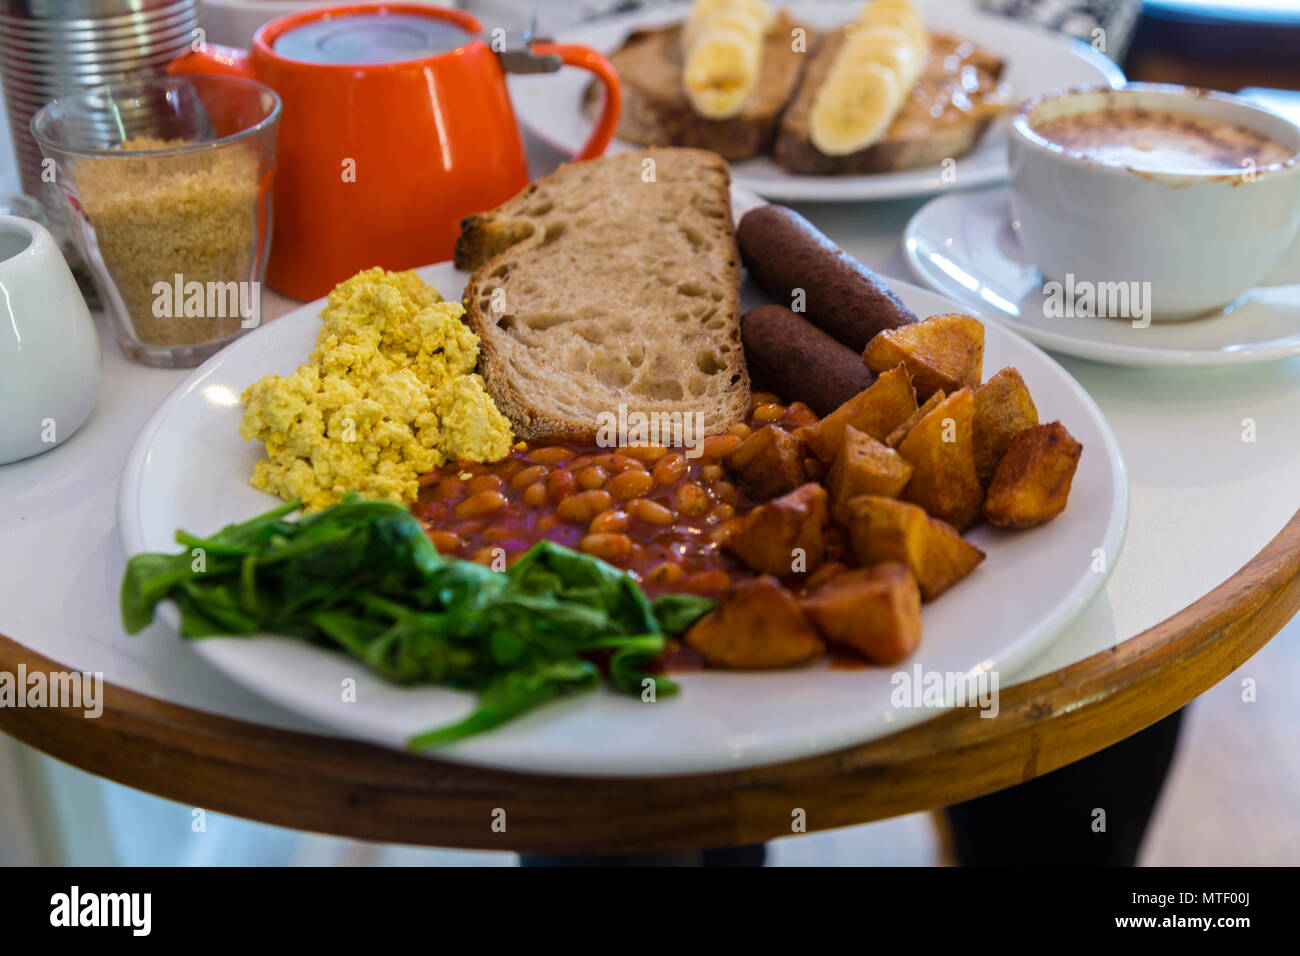 Vegan brunch london